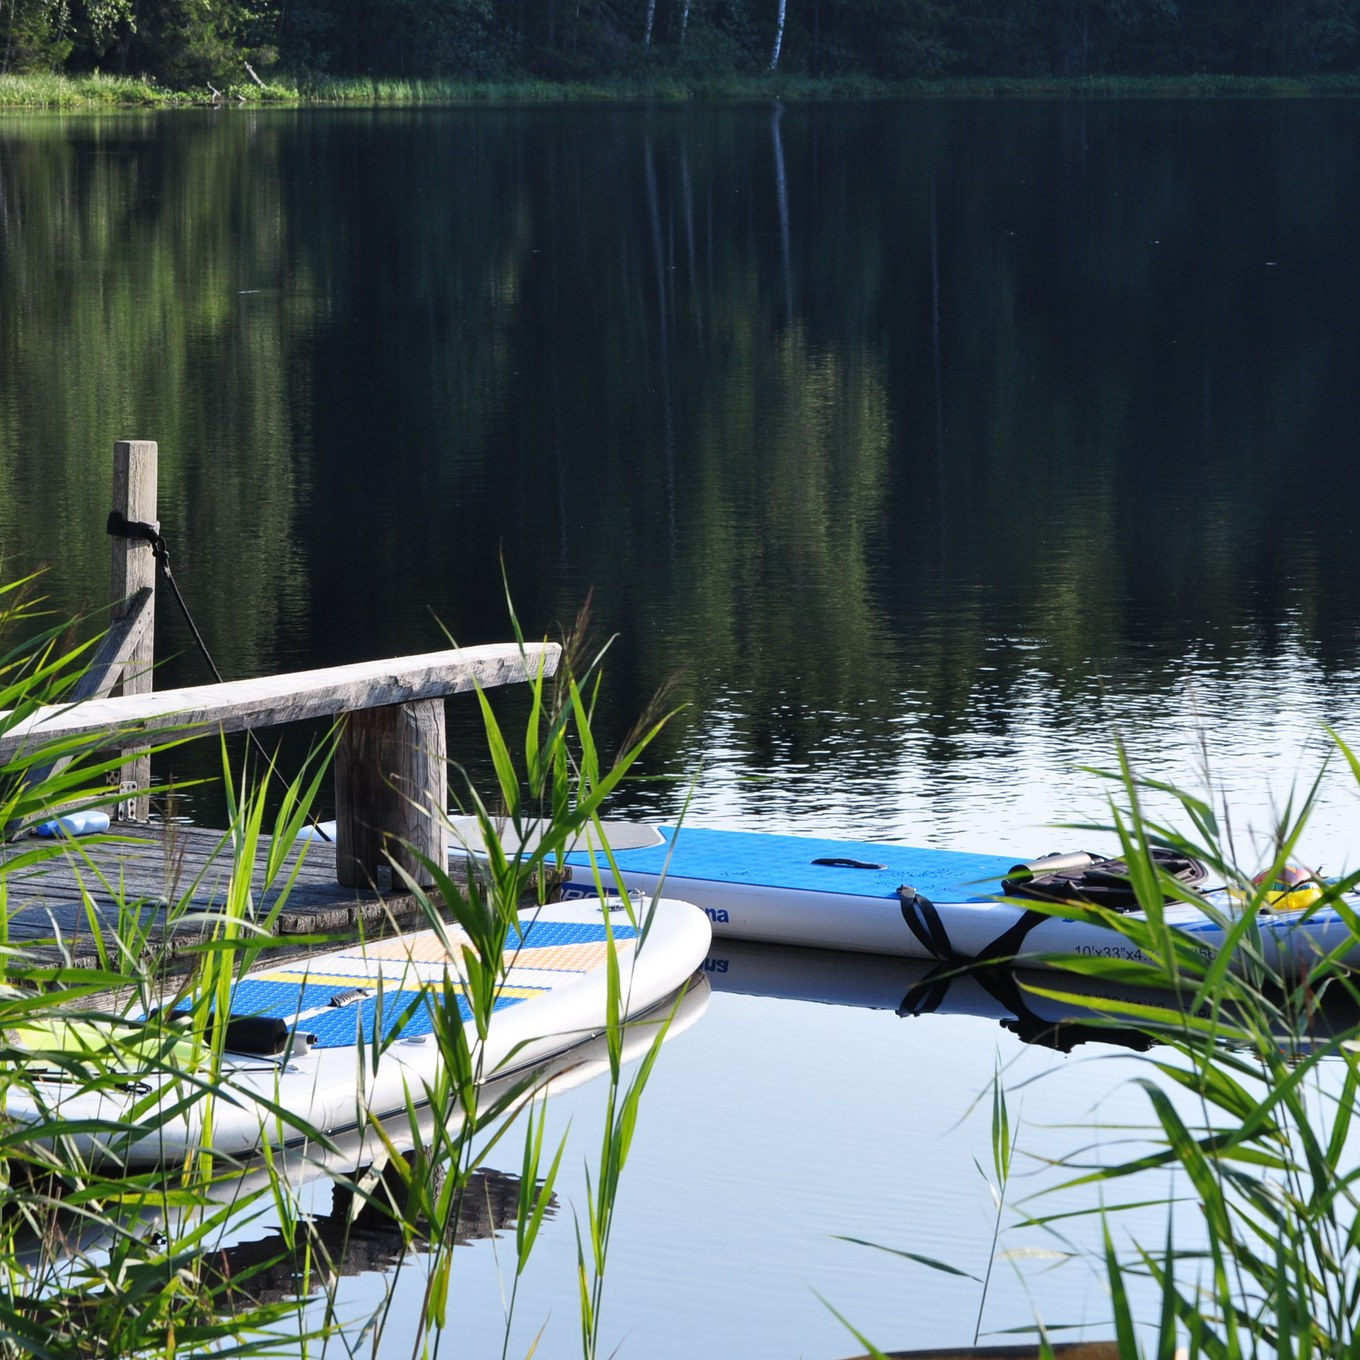 R%C3%A5mossa+Lodge%2C+SUP+boards+and+private+lake+-2.jpg